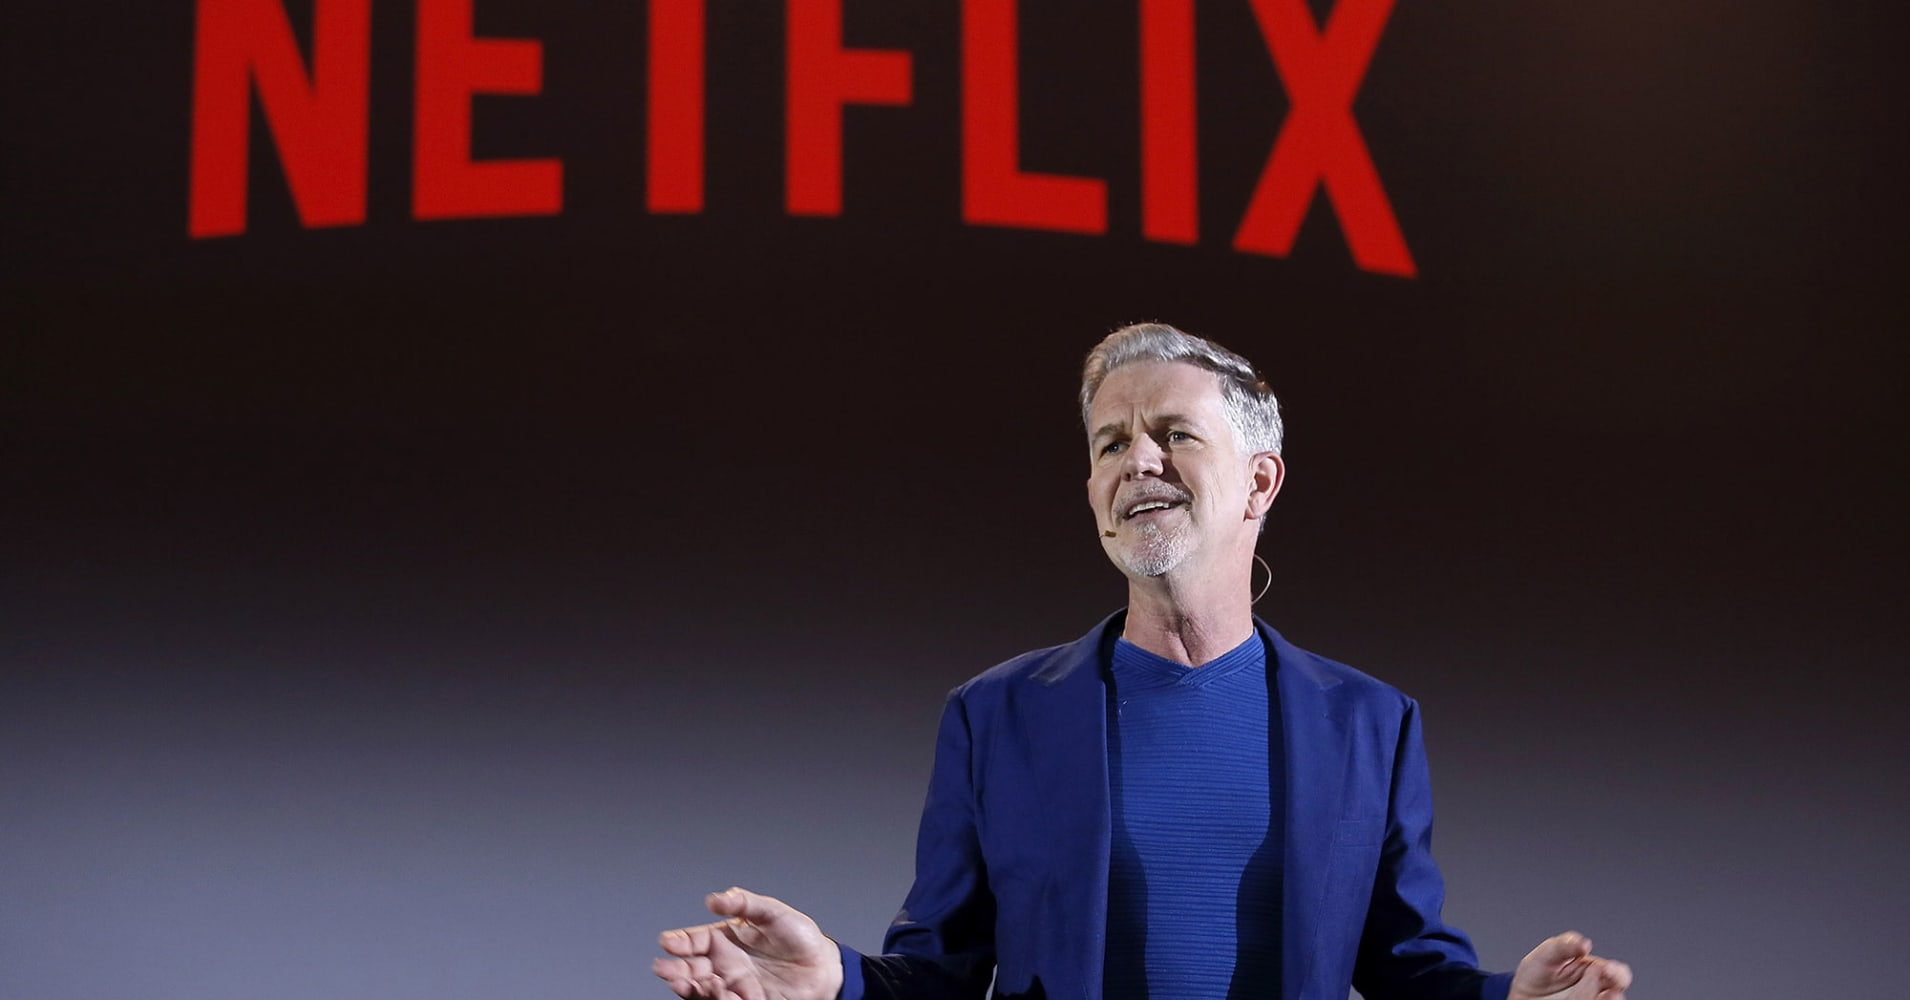 If you invested $1,000 in Netflix in 2007, here's how much you'd have now